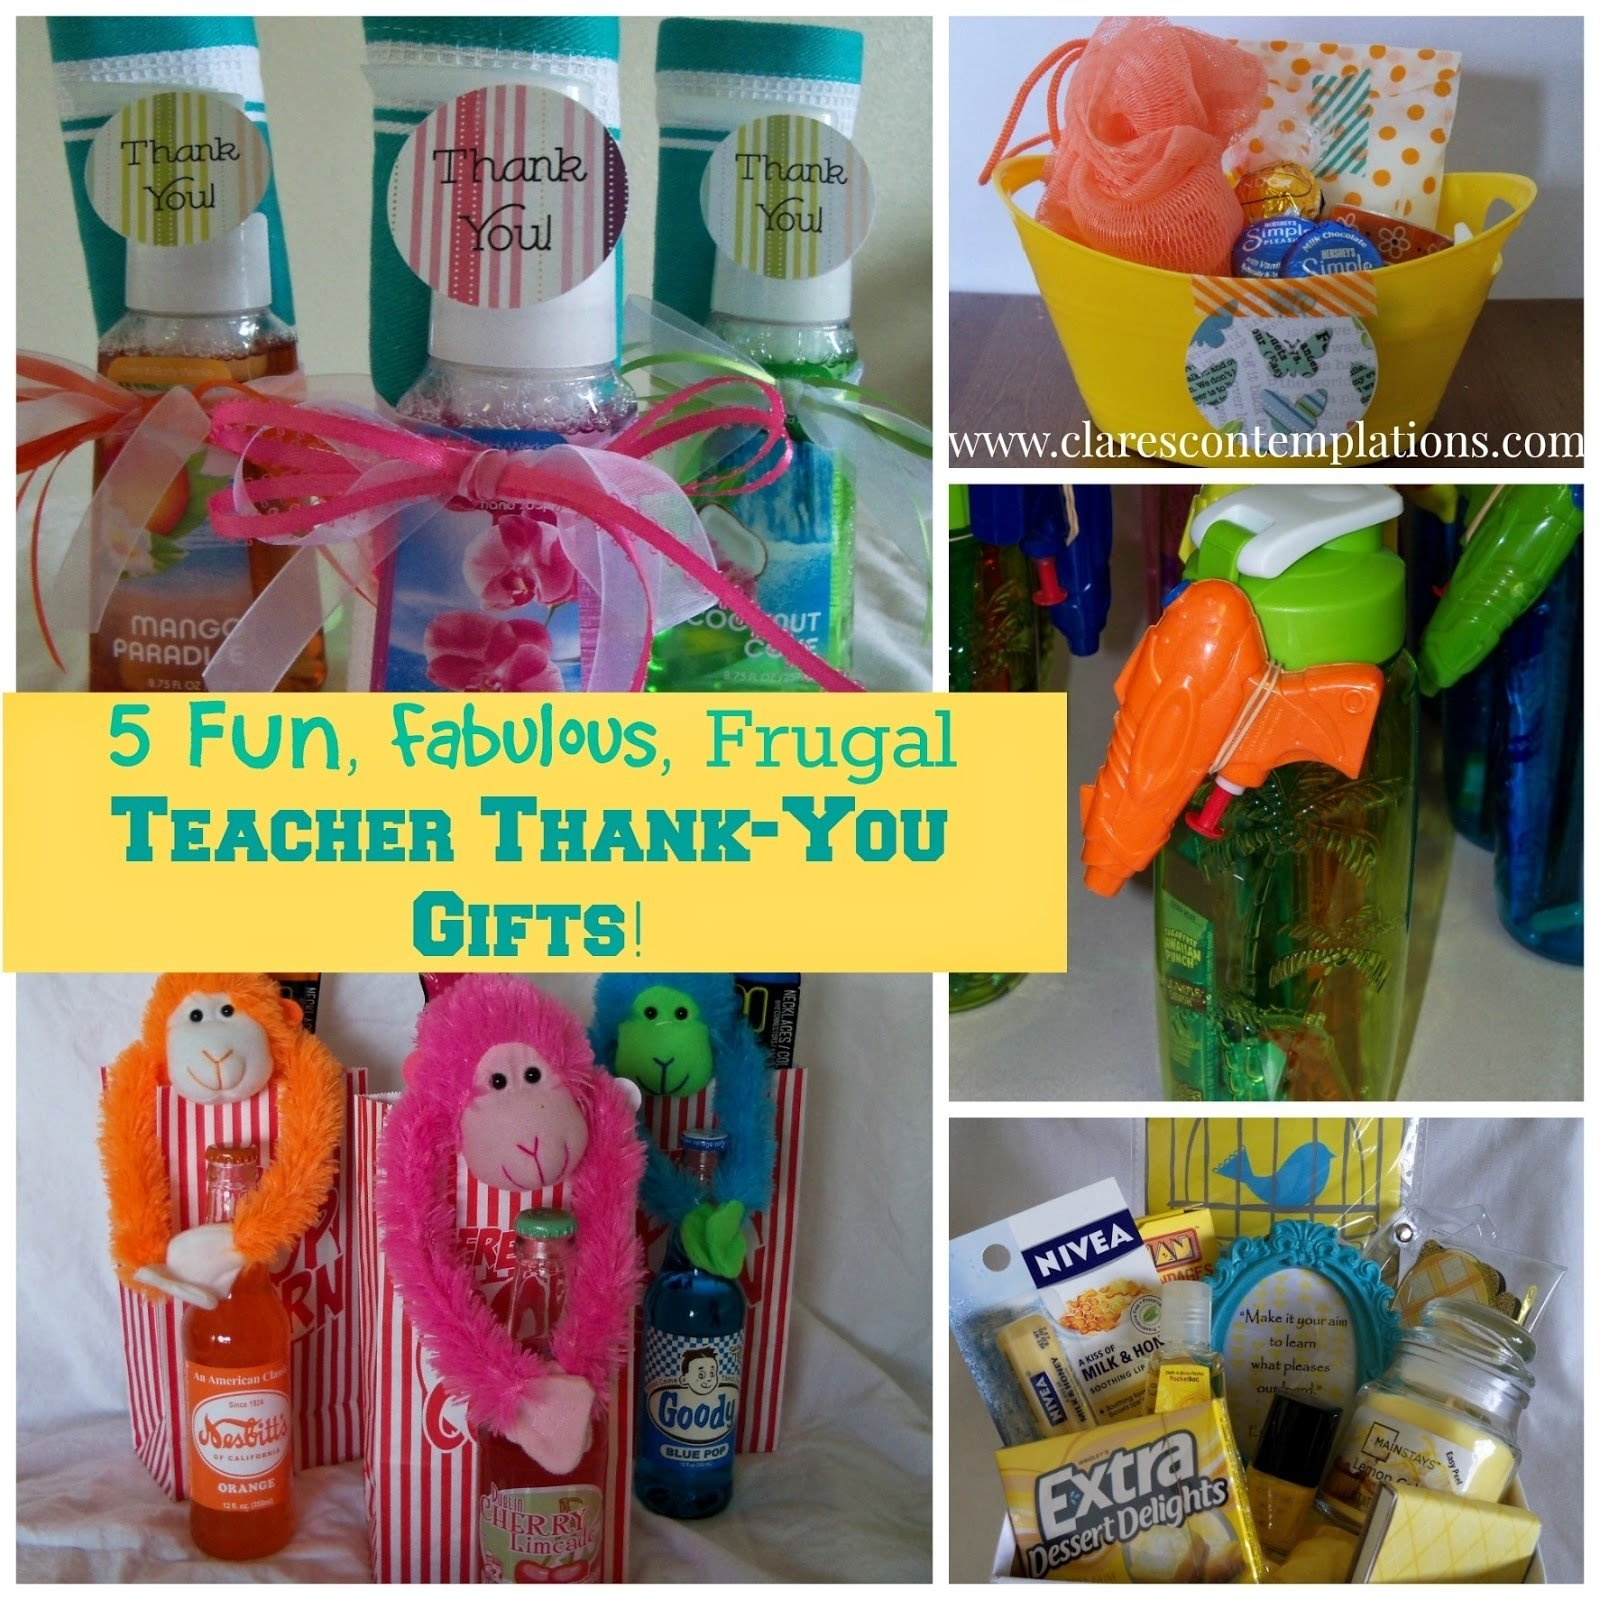 10 Spectacular Thank You Ideas For Teachers clares contemplations 5 unique thoughtful and frugal teacher 2020